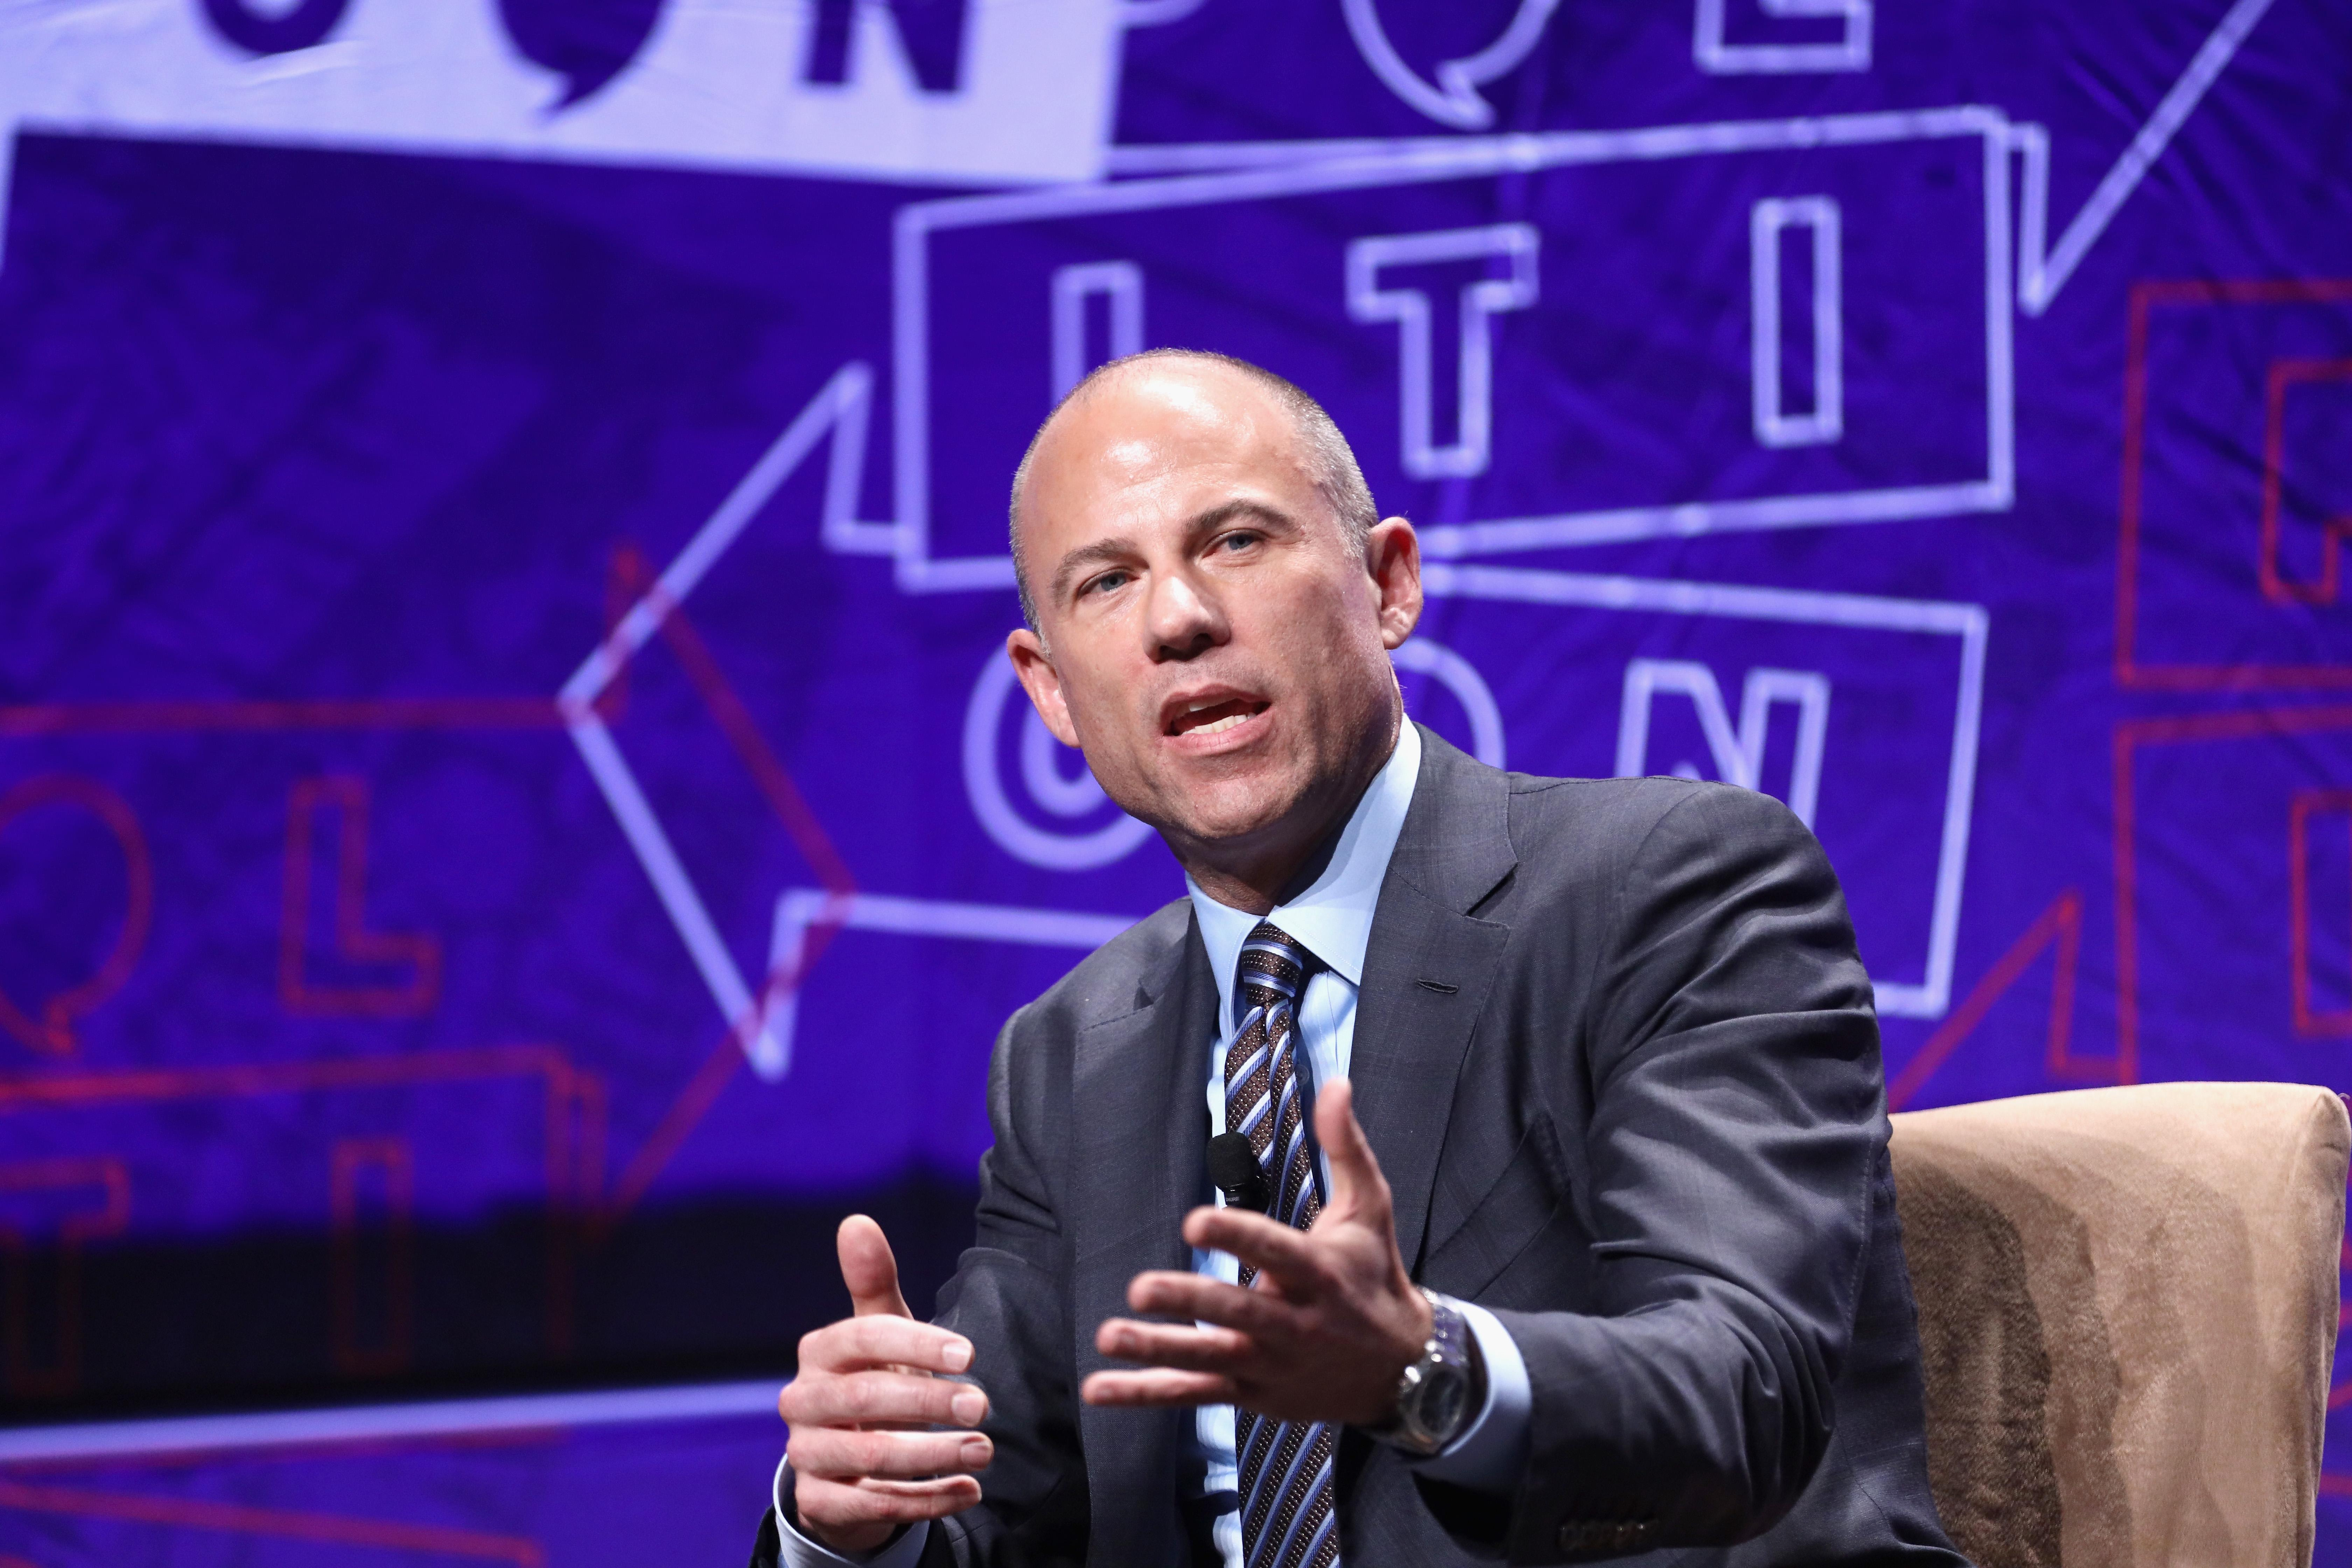 Michael Avenatti Claims Video Shows He Didn't Attack 'Ocean's 8' Actress